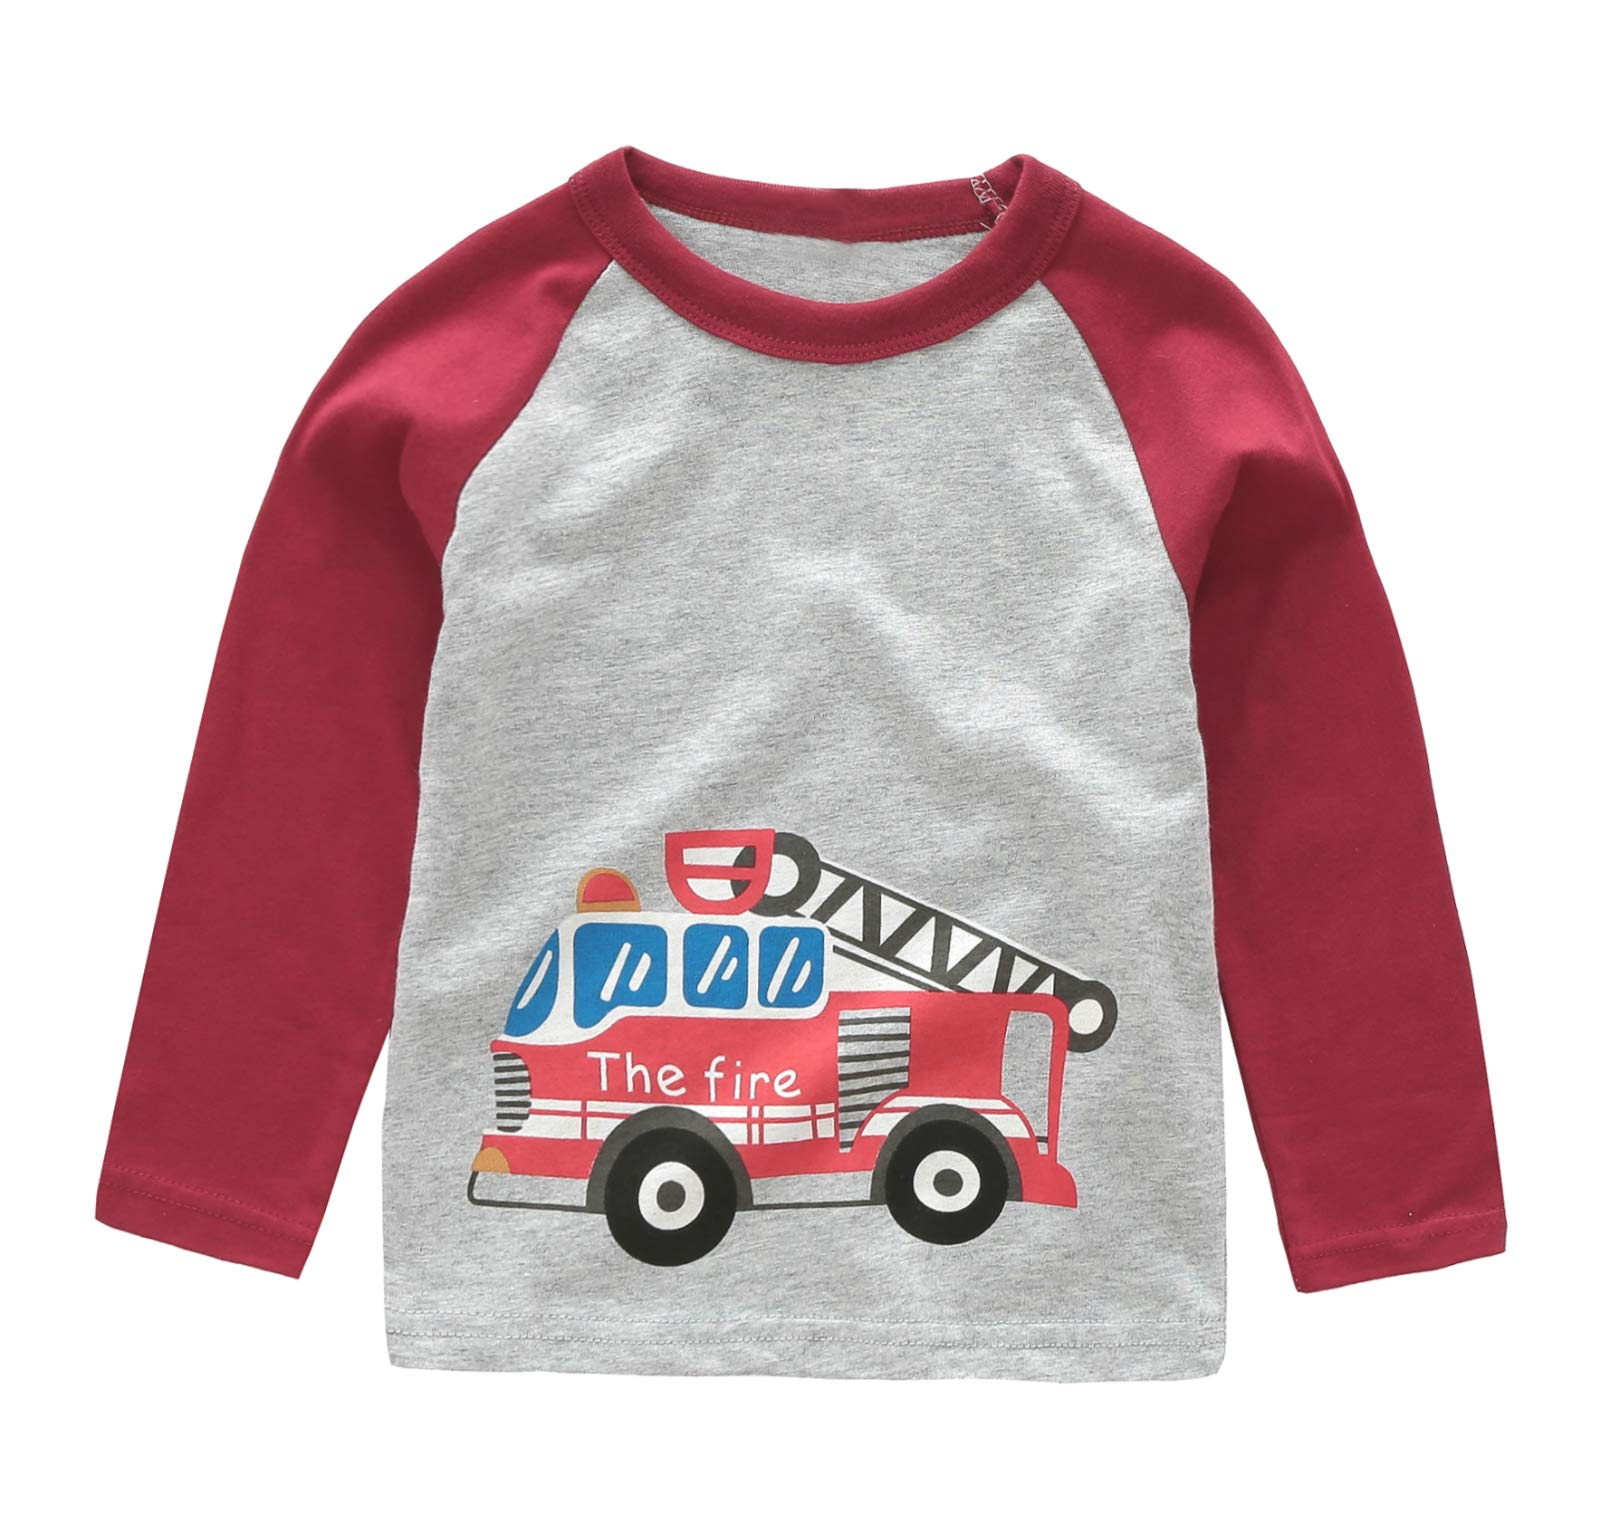 Boys Long Sleeve Cotton T-Shirts Fire Truck Shirt Graphic Tees 5T